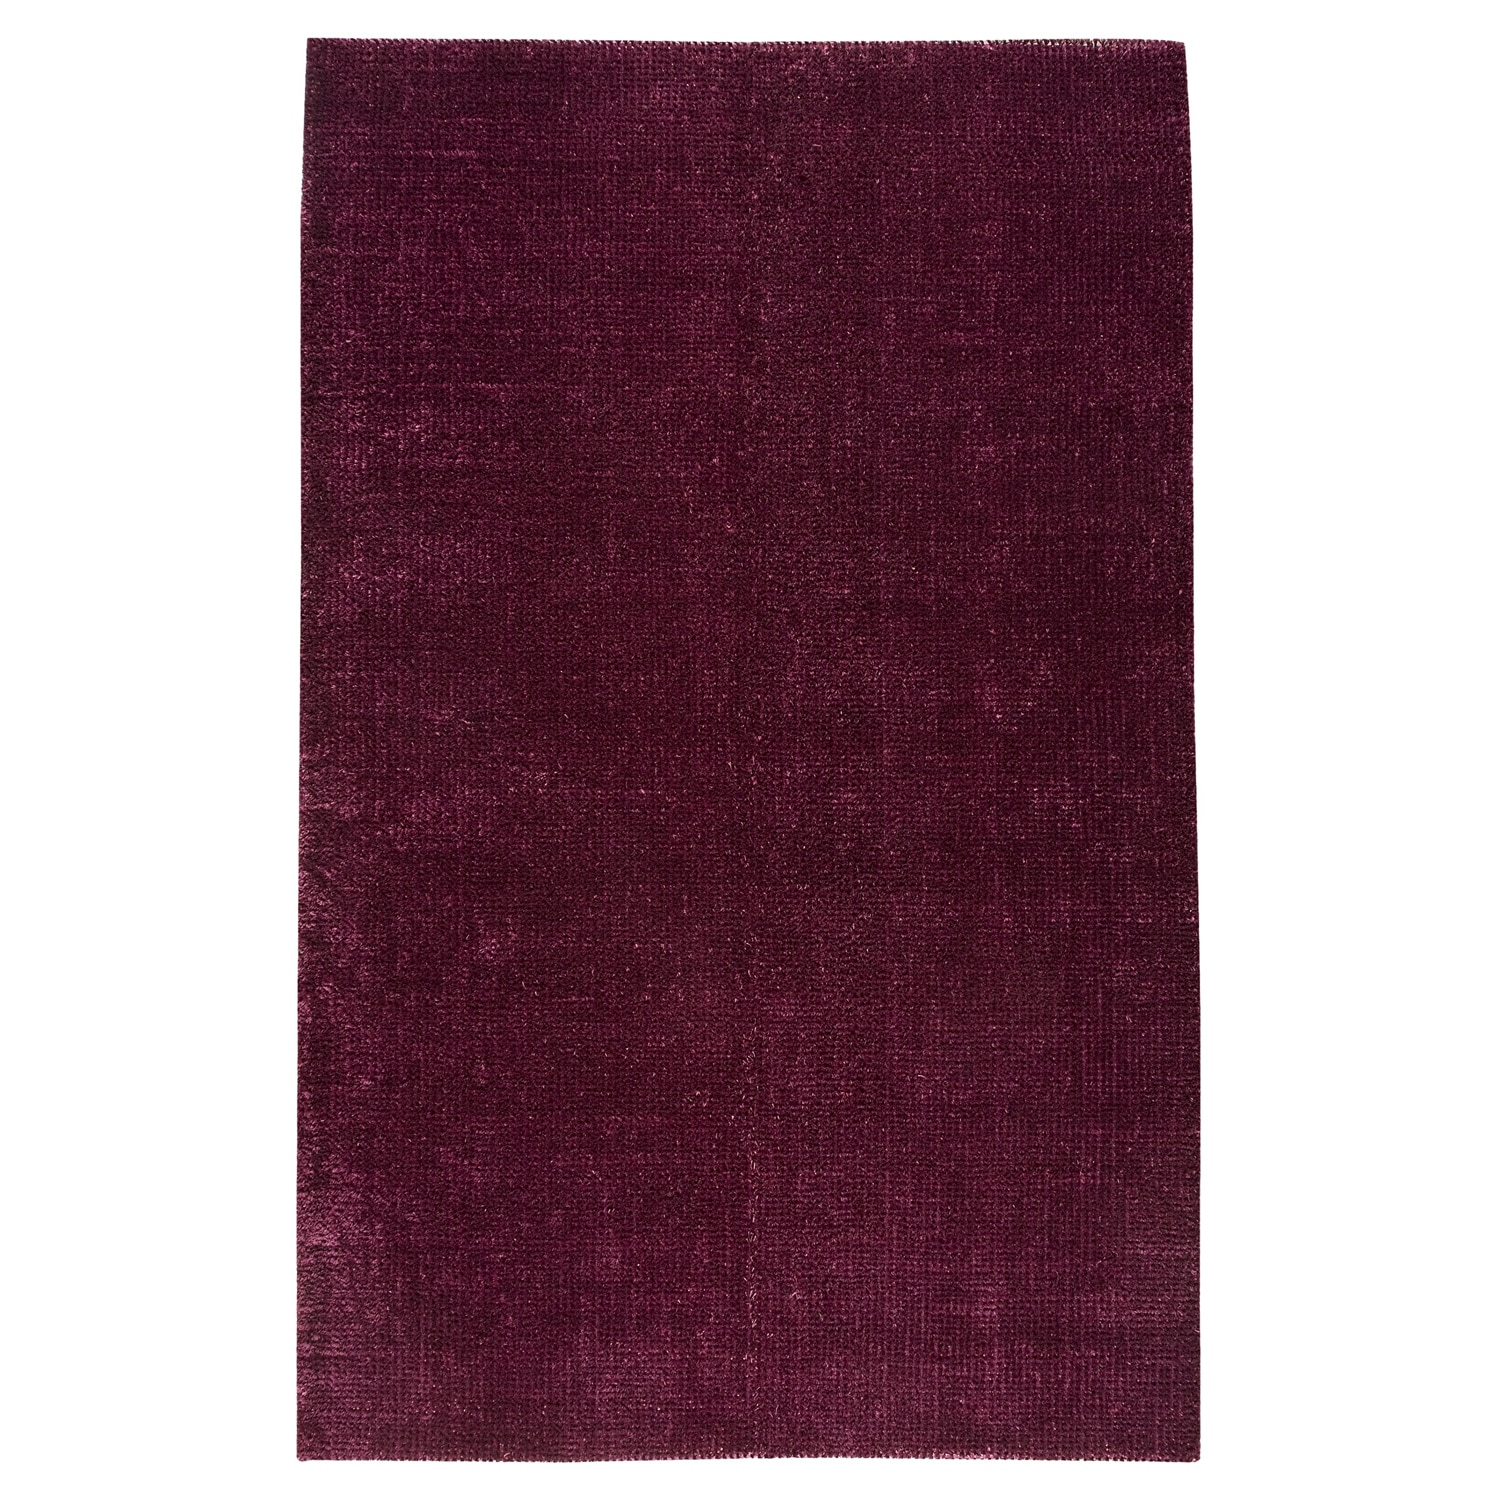 M.A.Trading Hand-woven Cherry Purple Rug (8' x 10')